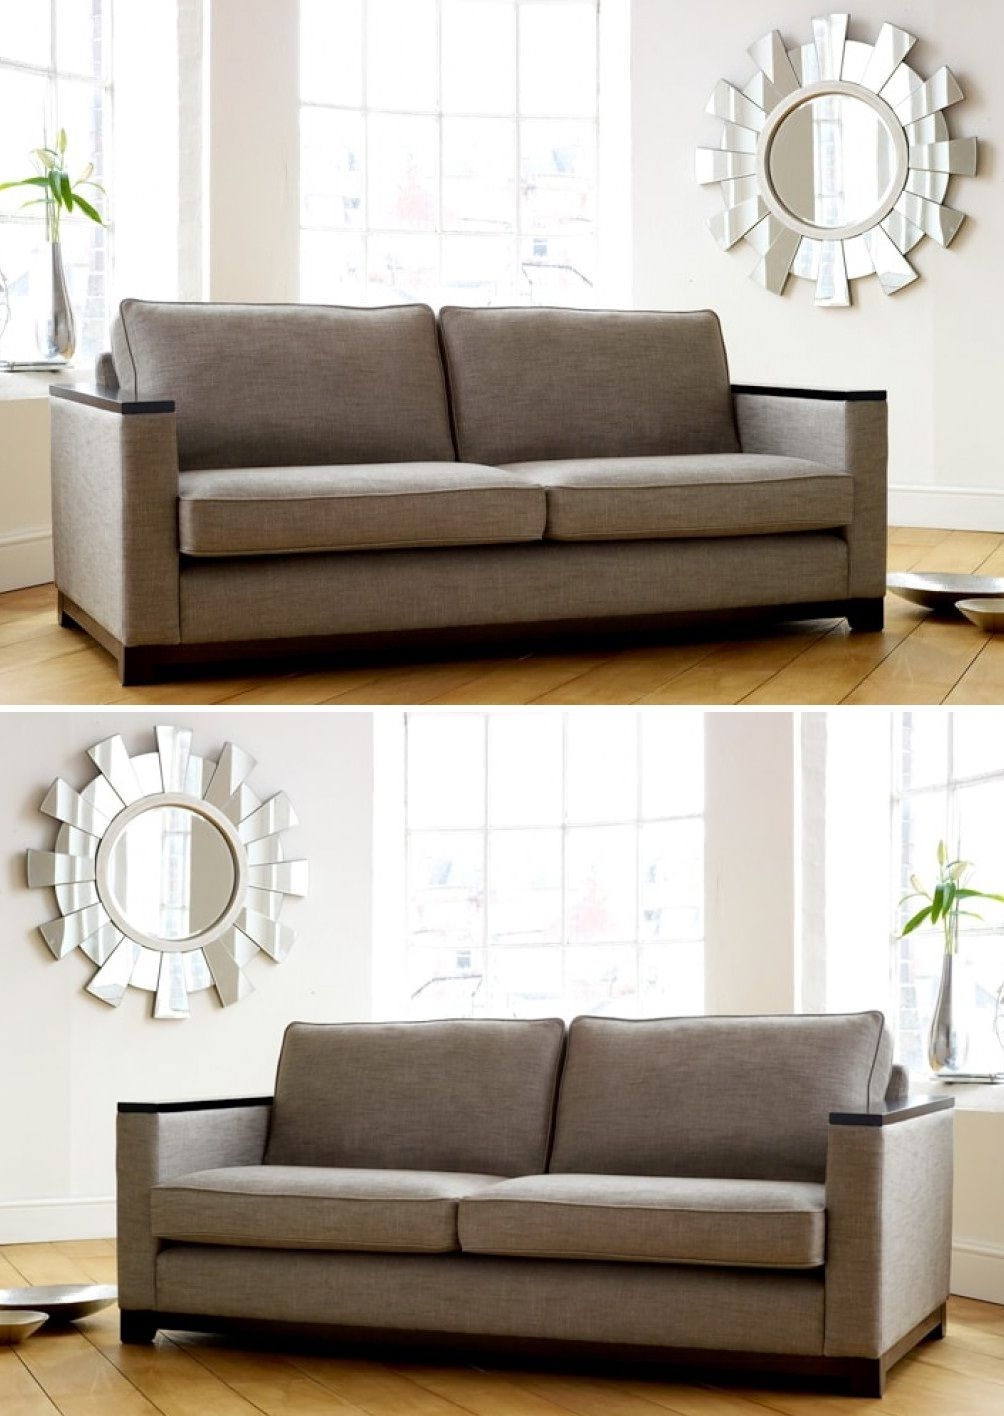 Fabric Sofa With Wood Trim 2019 Couch Design Latest Sofa